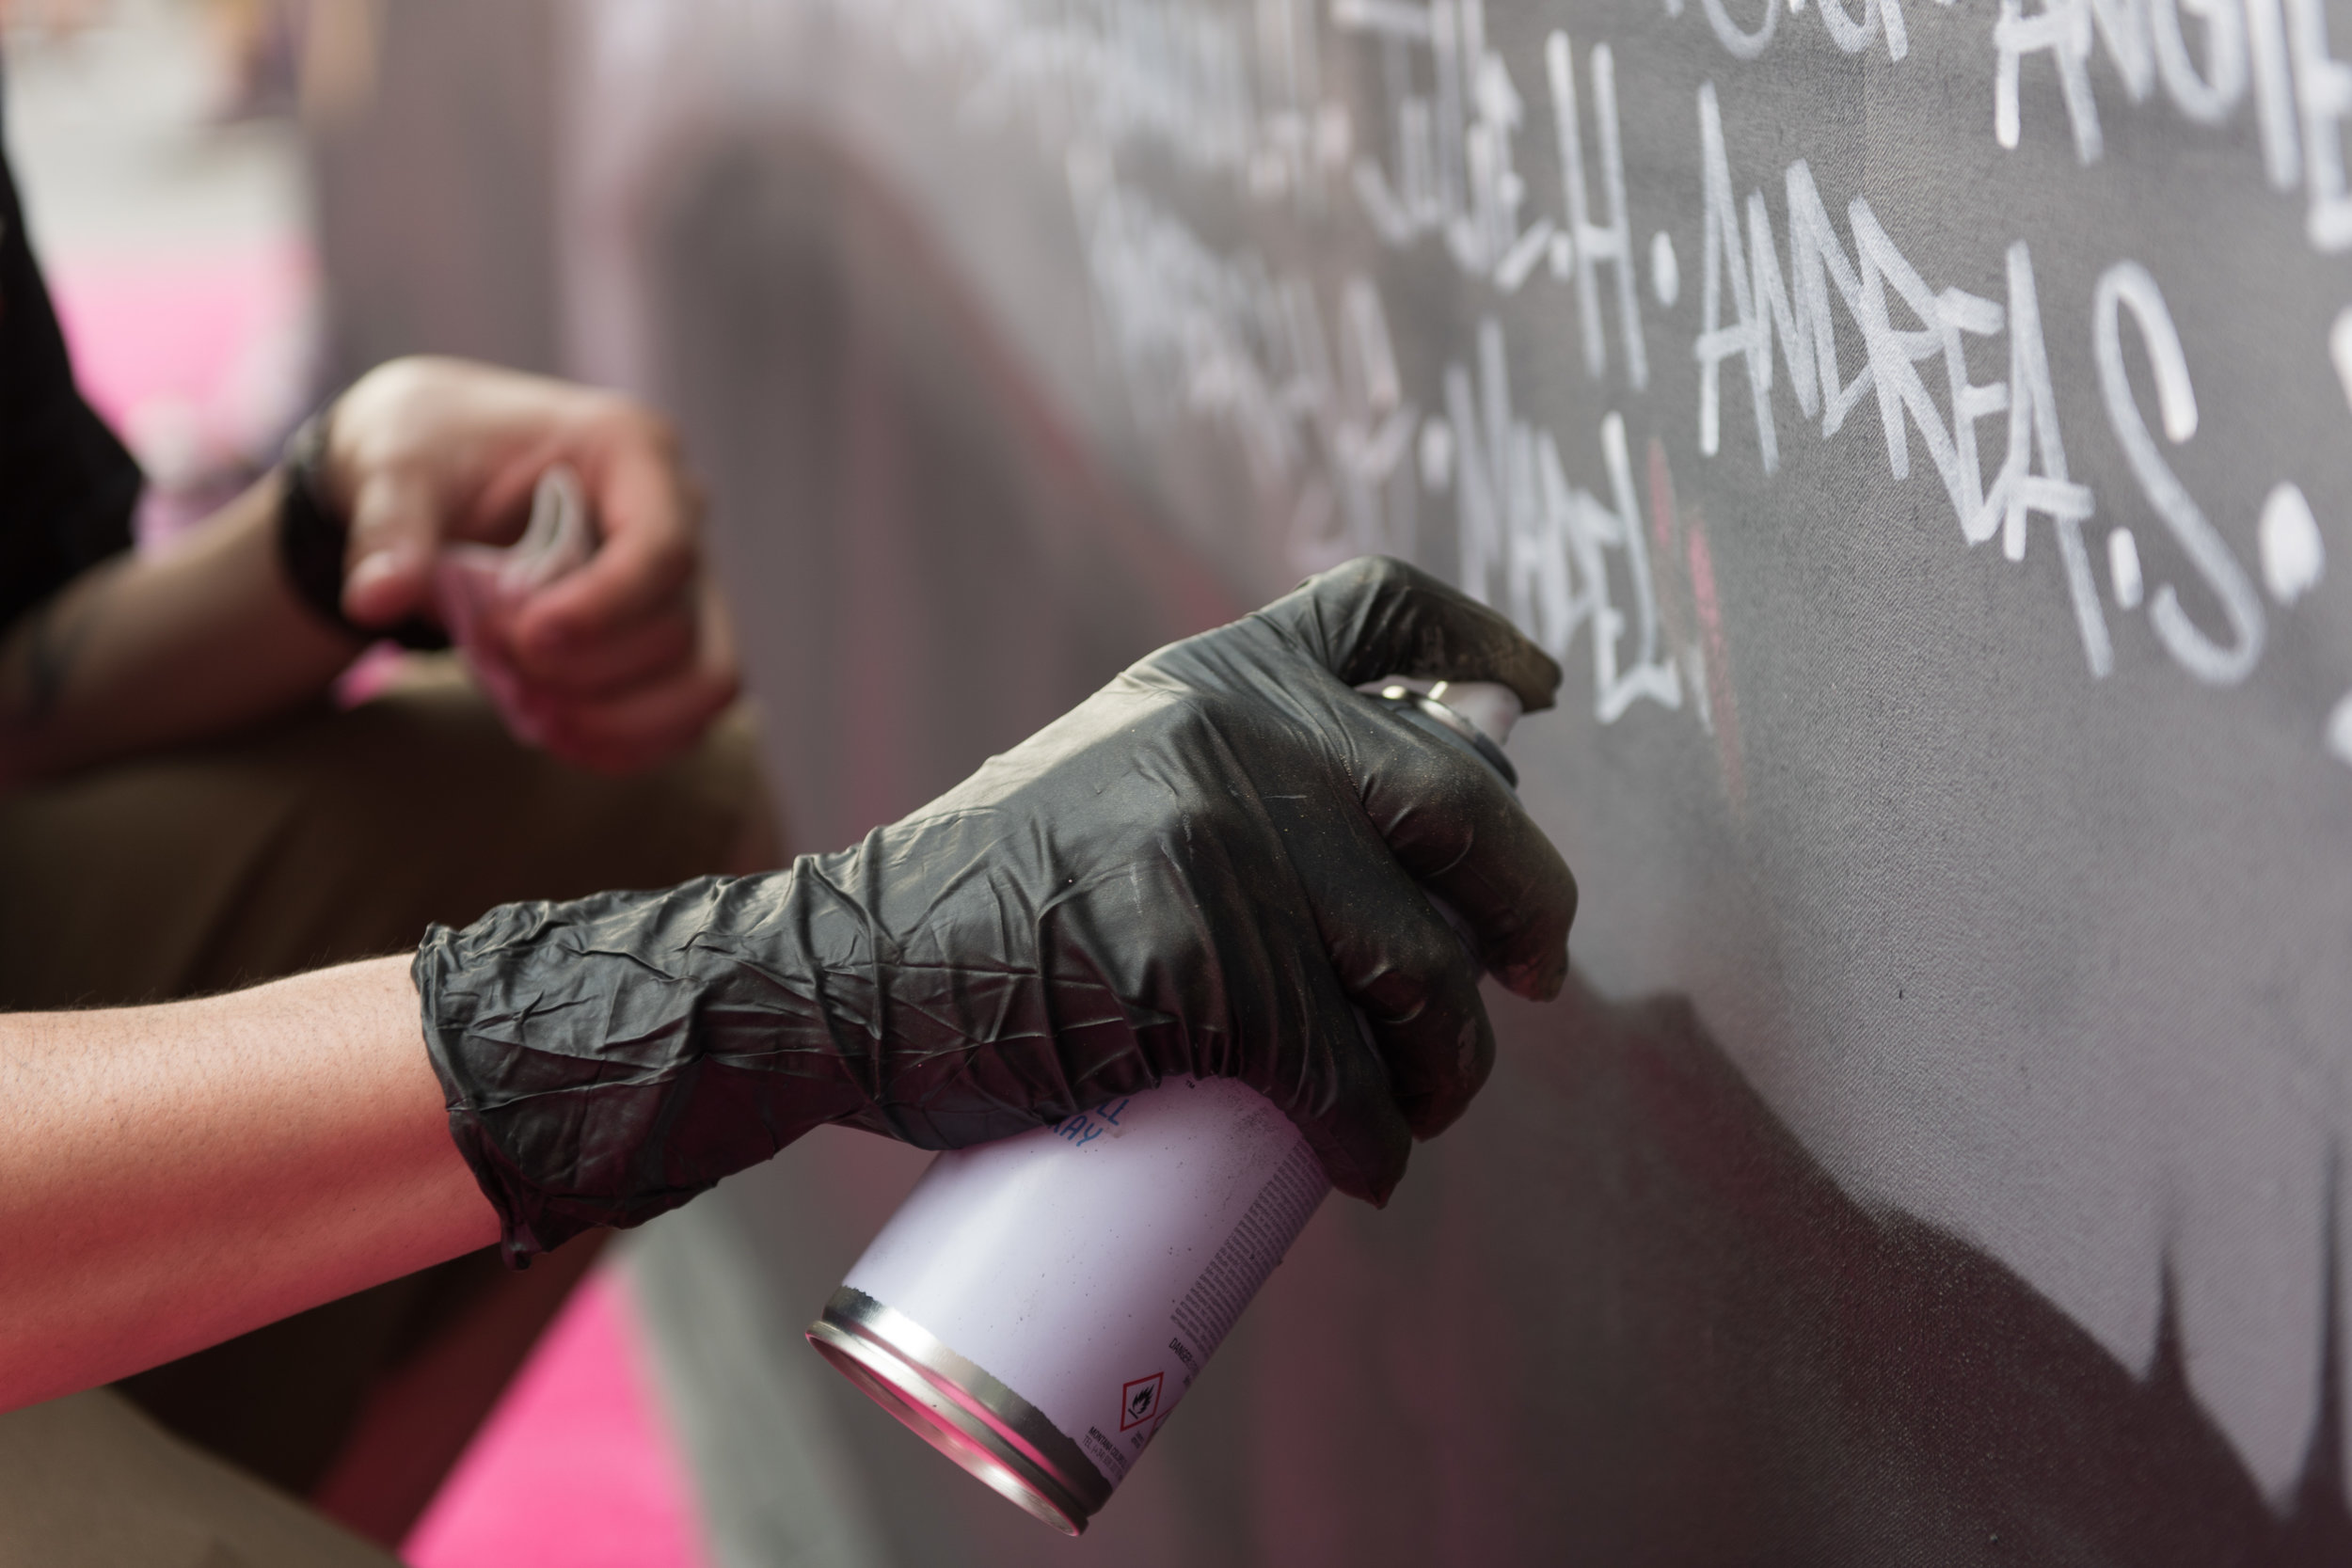 Artist Spen.1 paints a Golden Knights themed mural during a Stanley Cup game 3 watch party at T-Mobile Arena in Las Vegas, June 2, 2018. The mural features hundreds of names of fans.